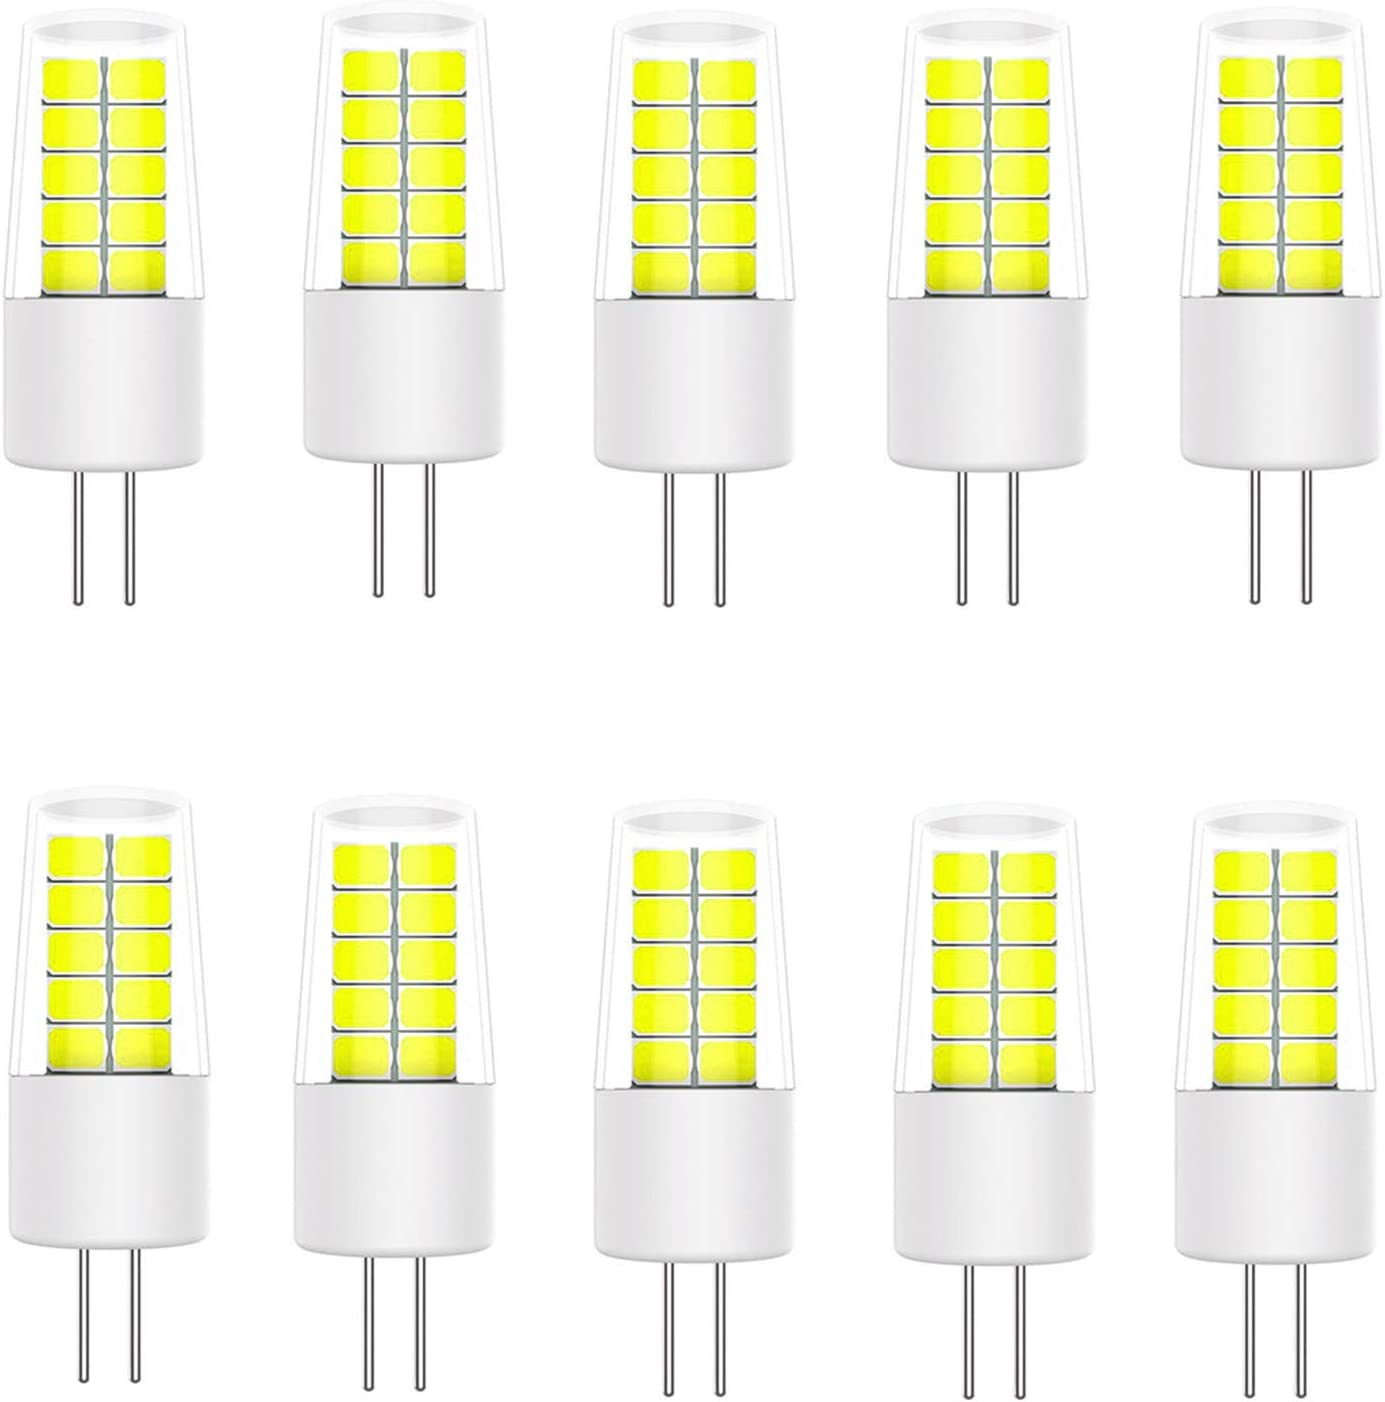 10 Pack for Chandelier YWX LIGHT G4 LED Bulbs,3W Replace 20W 30W Halogen Bulbs Warm White 3000K 360/° Beam Angle No Flicker Non-dimmable Energy Saving Light Bulbs AC//DC 12V